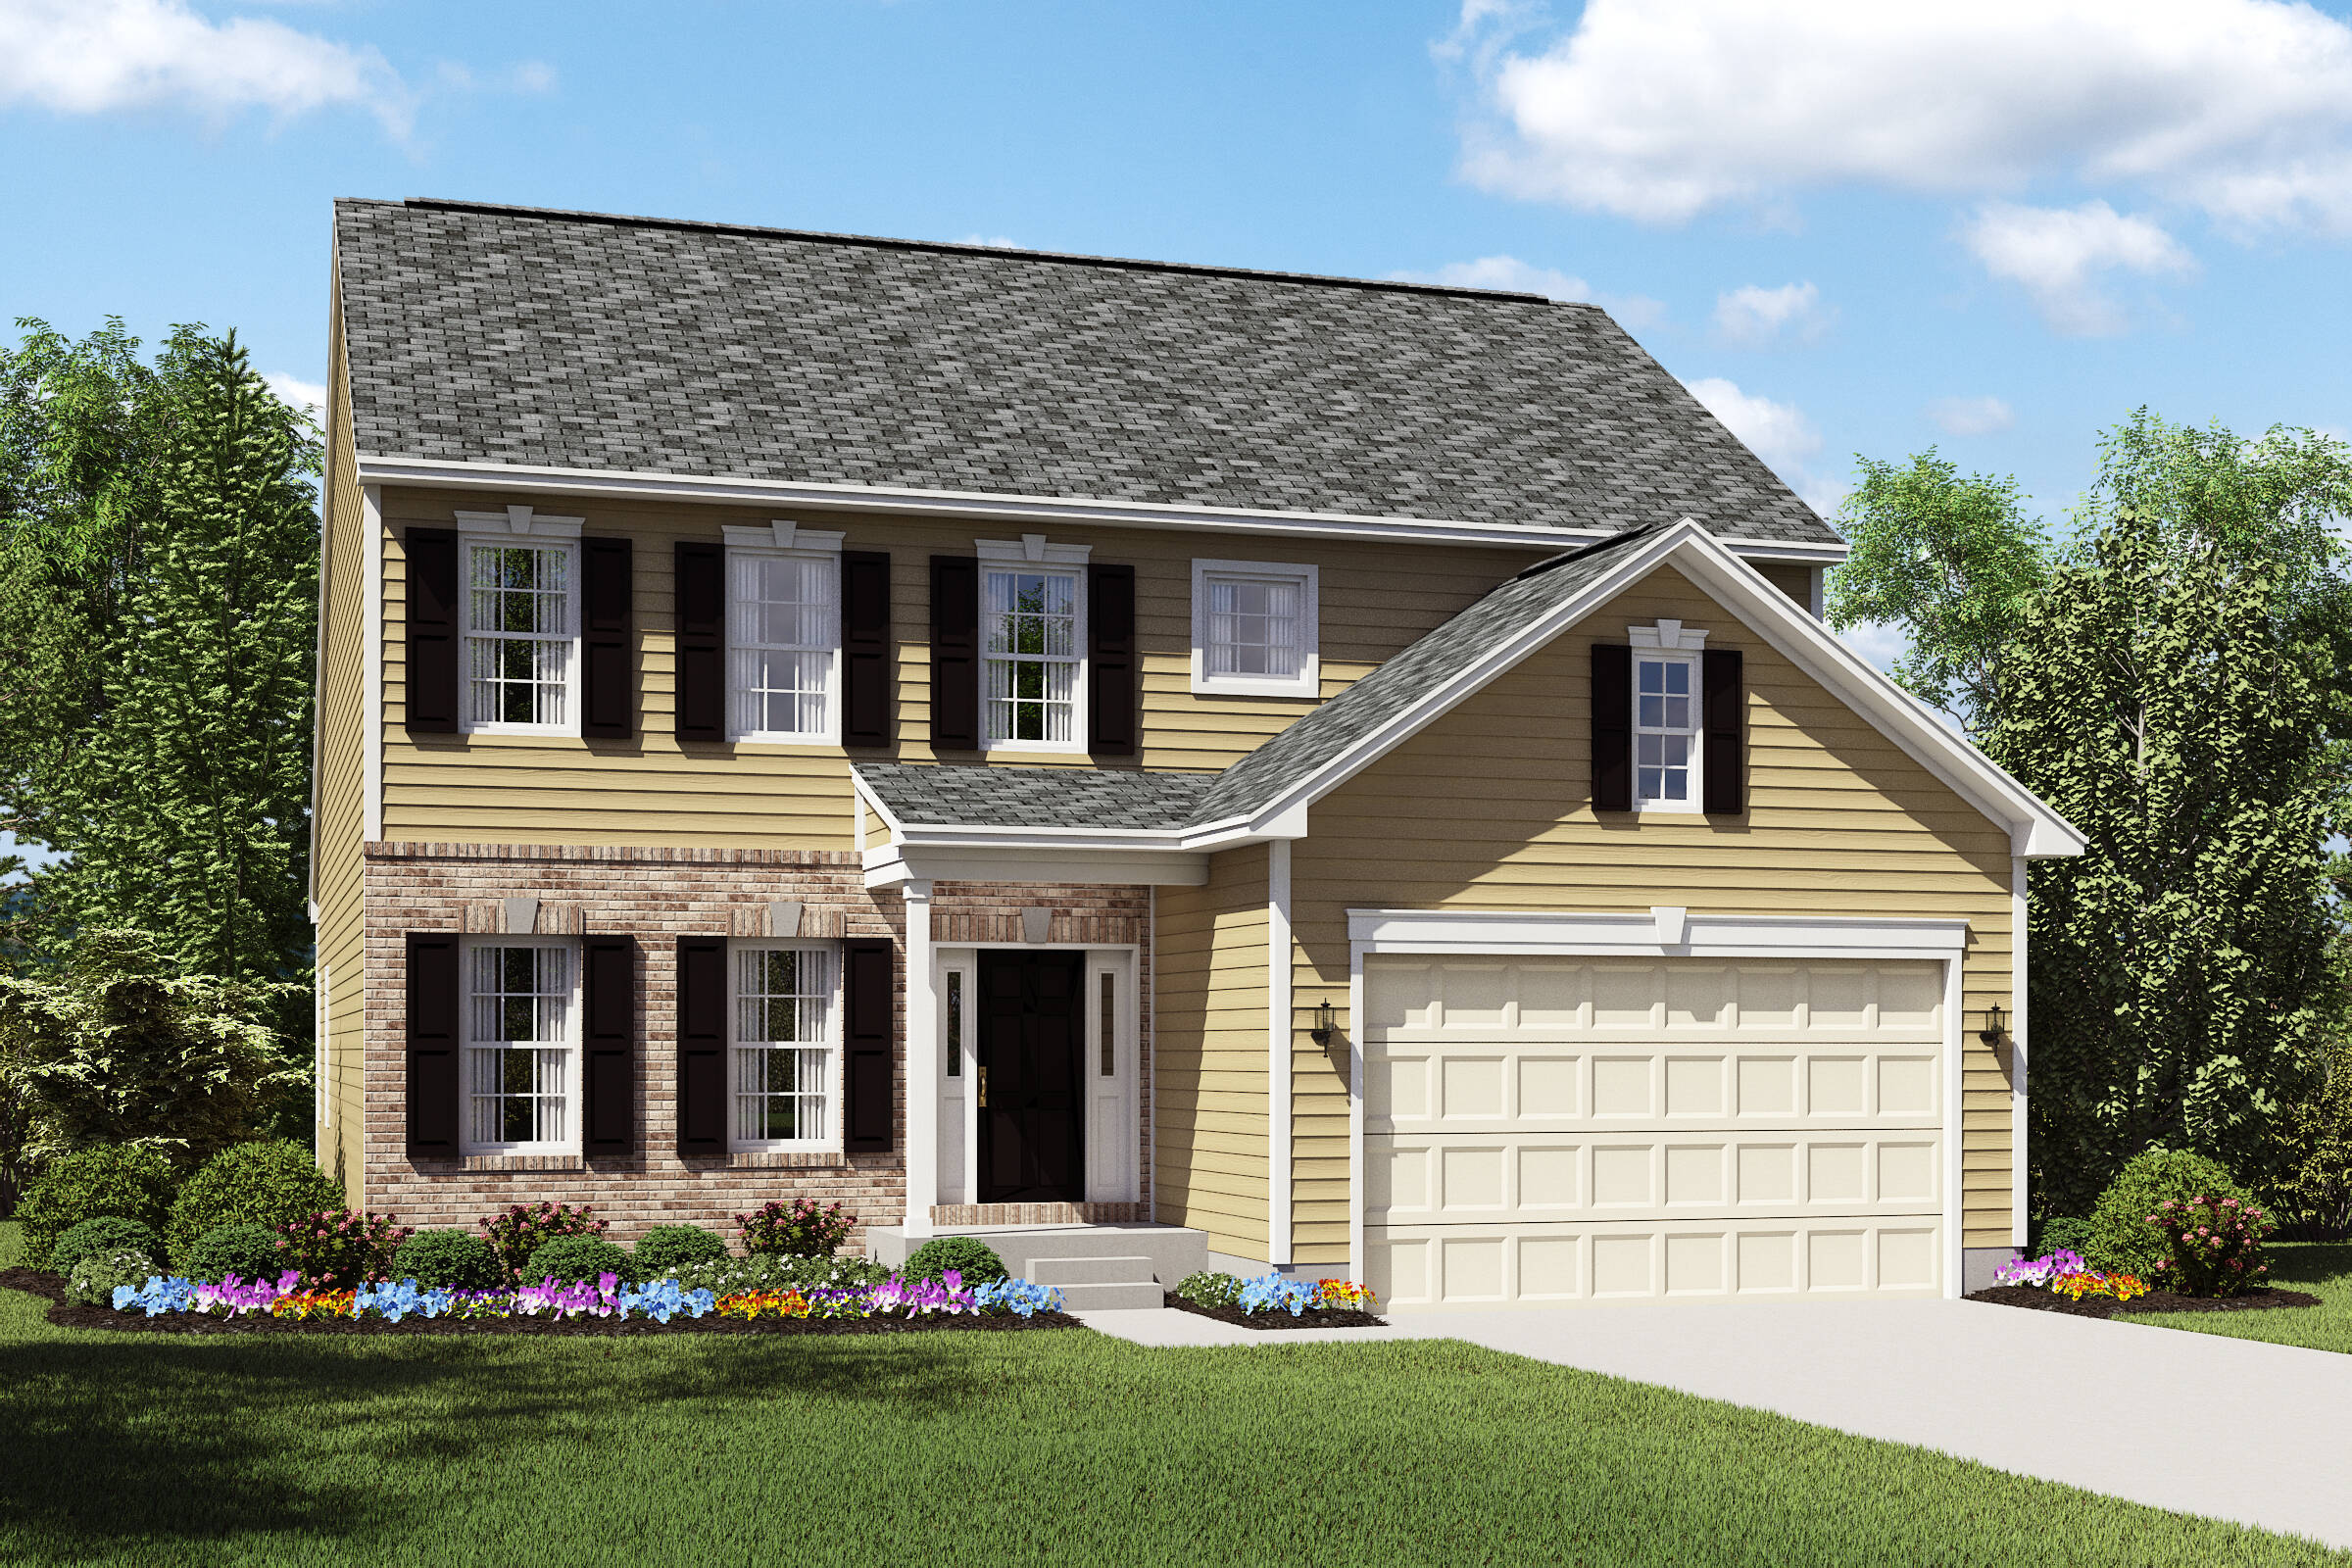 Oakridge-AB- meadow lakes north ridgeville new homes